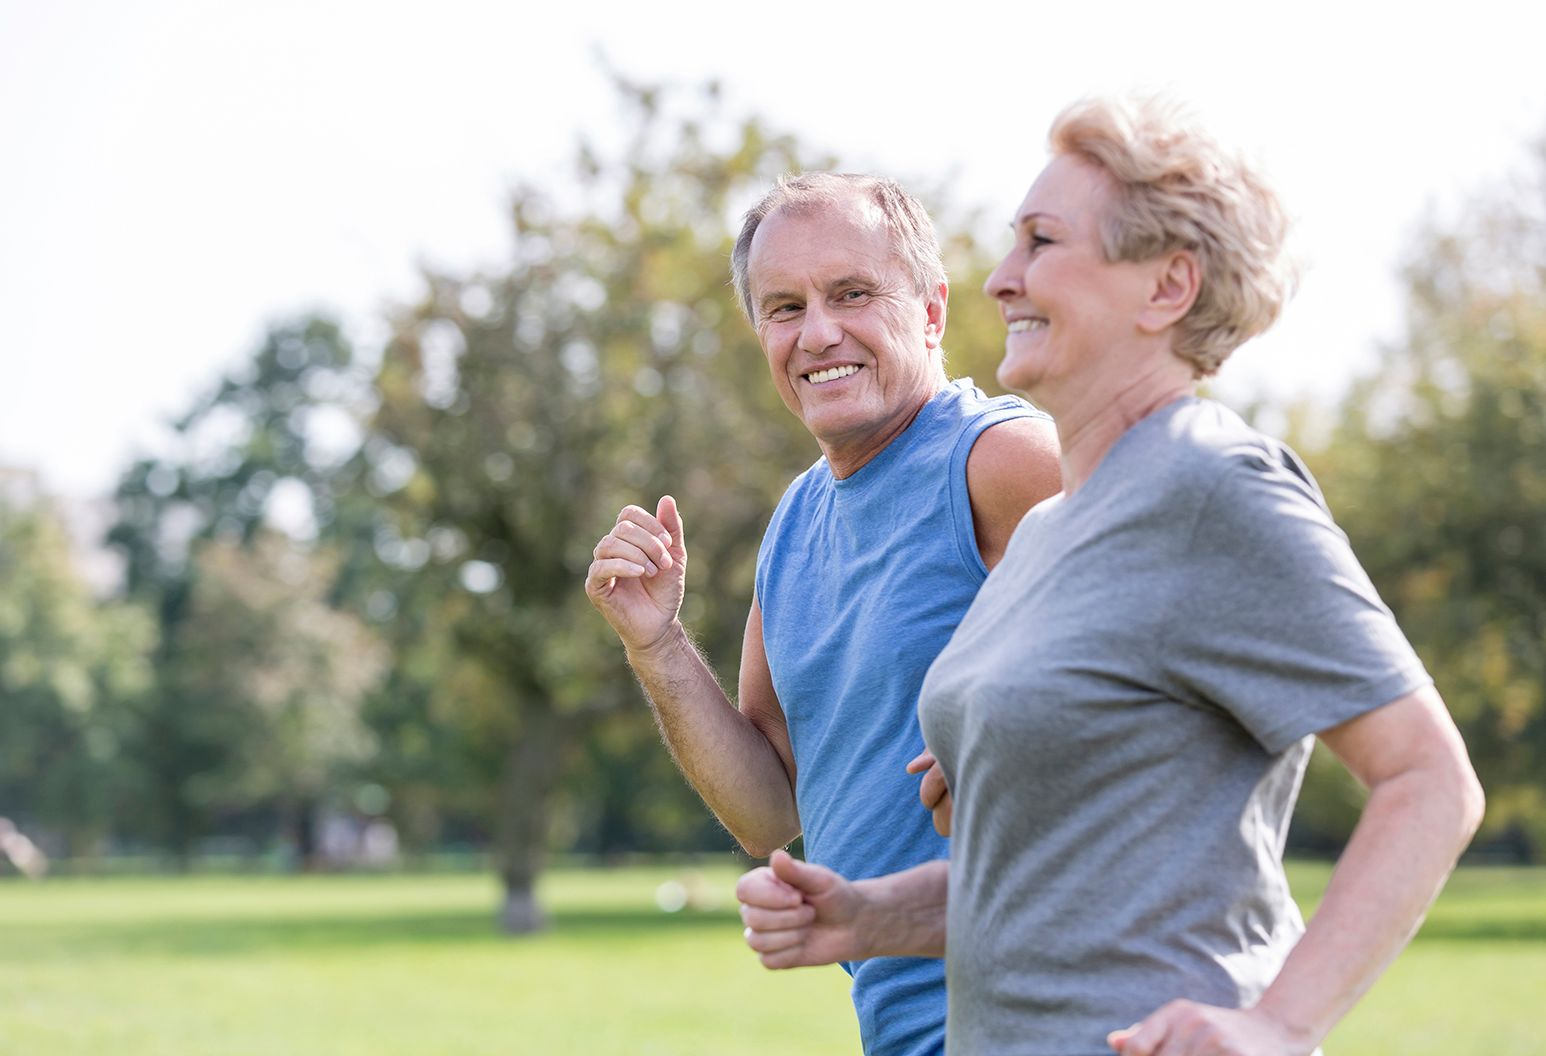 A senior couple jogs together in a park. The man is wearing a blue tank top, looking at the woman. The woman is wearing a gray t-shirt and looks straight ahead. There are trees and greenery in the background.